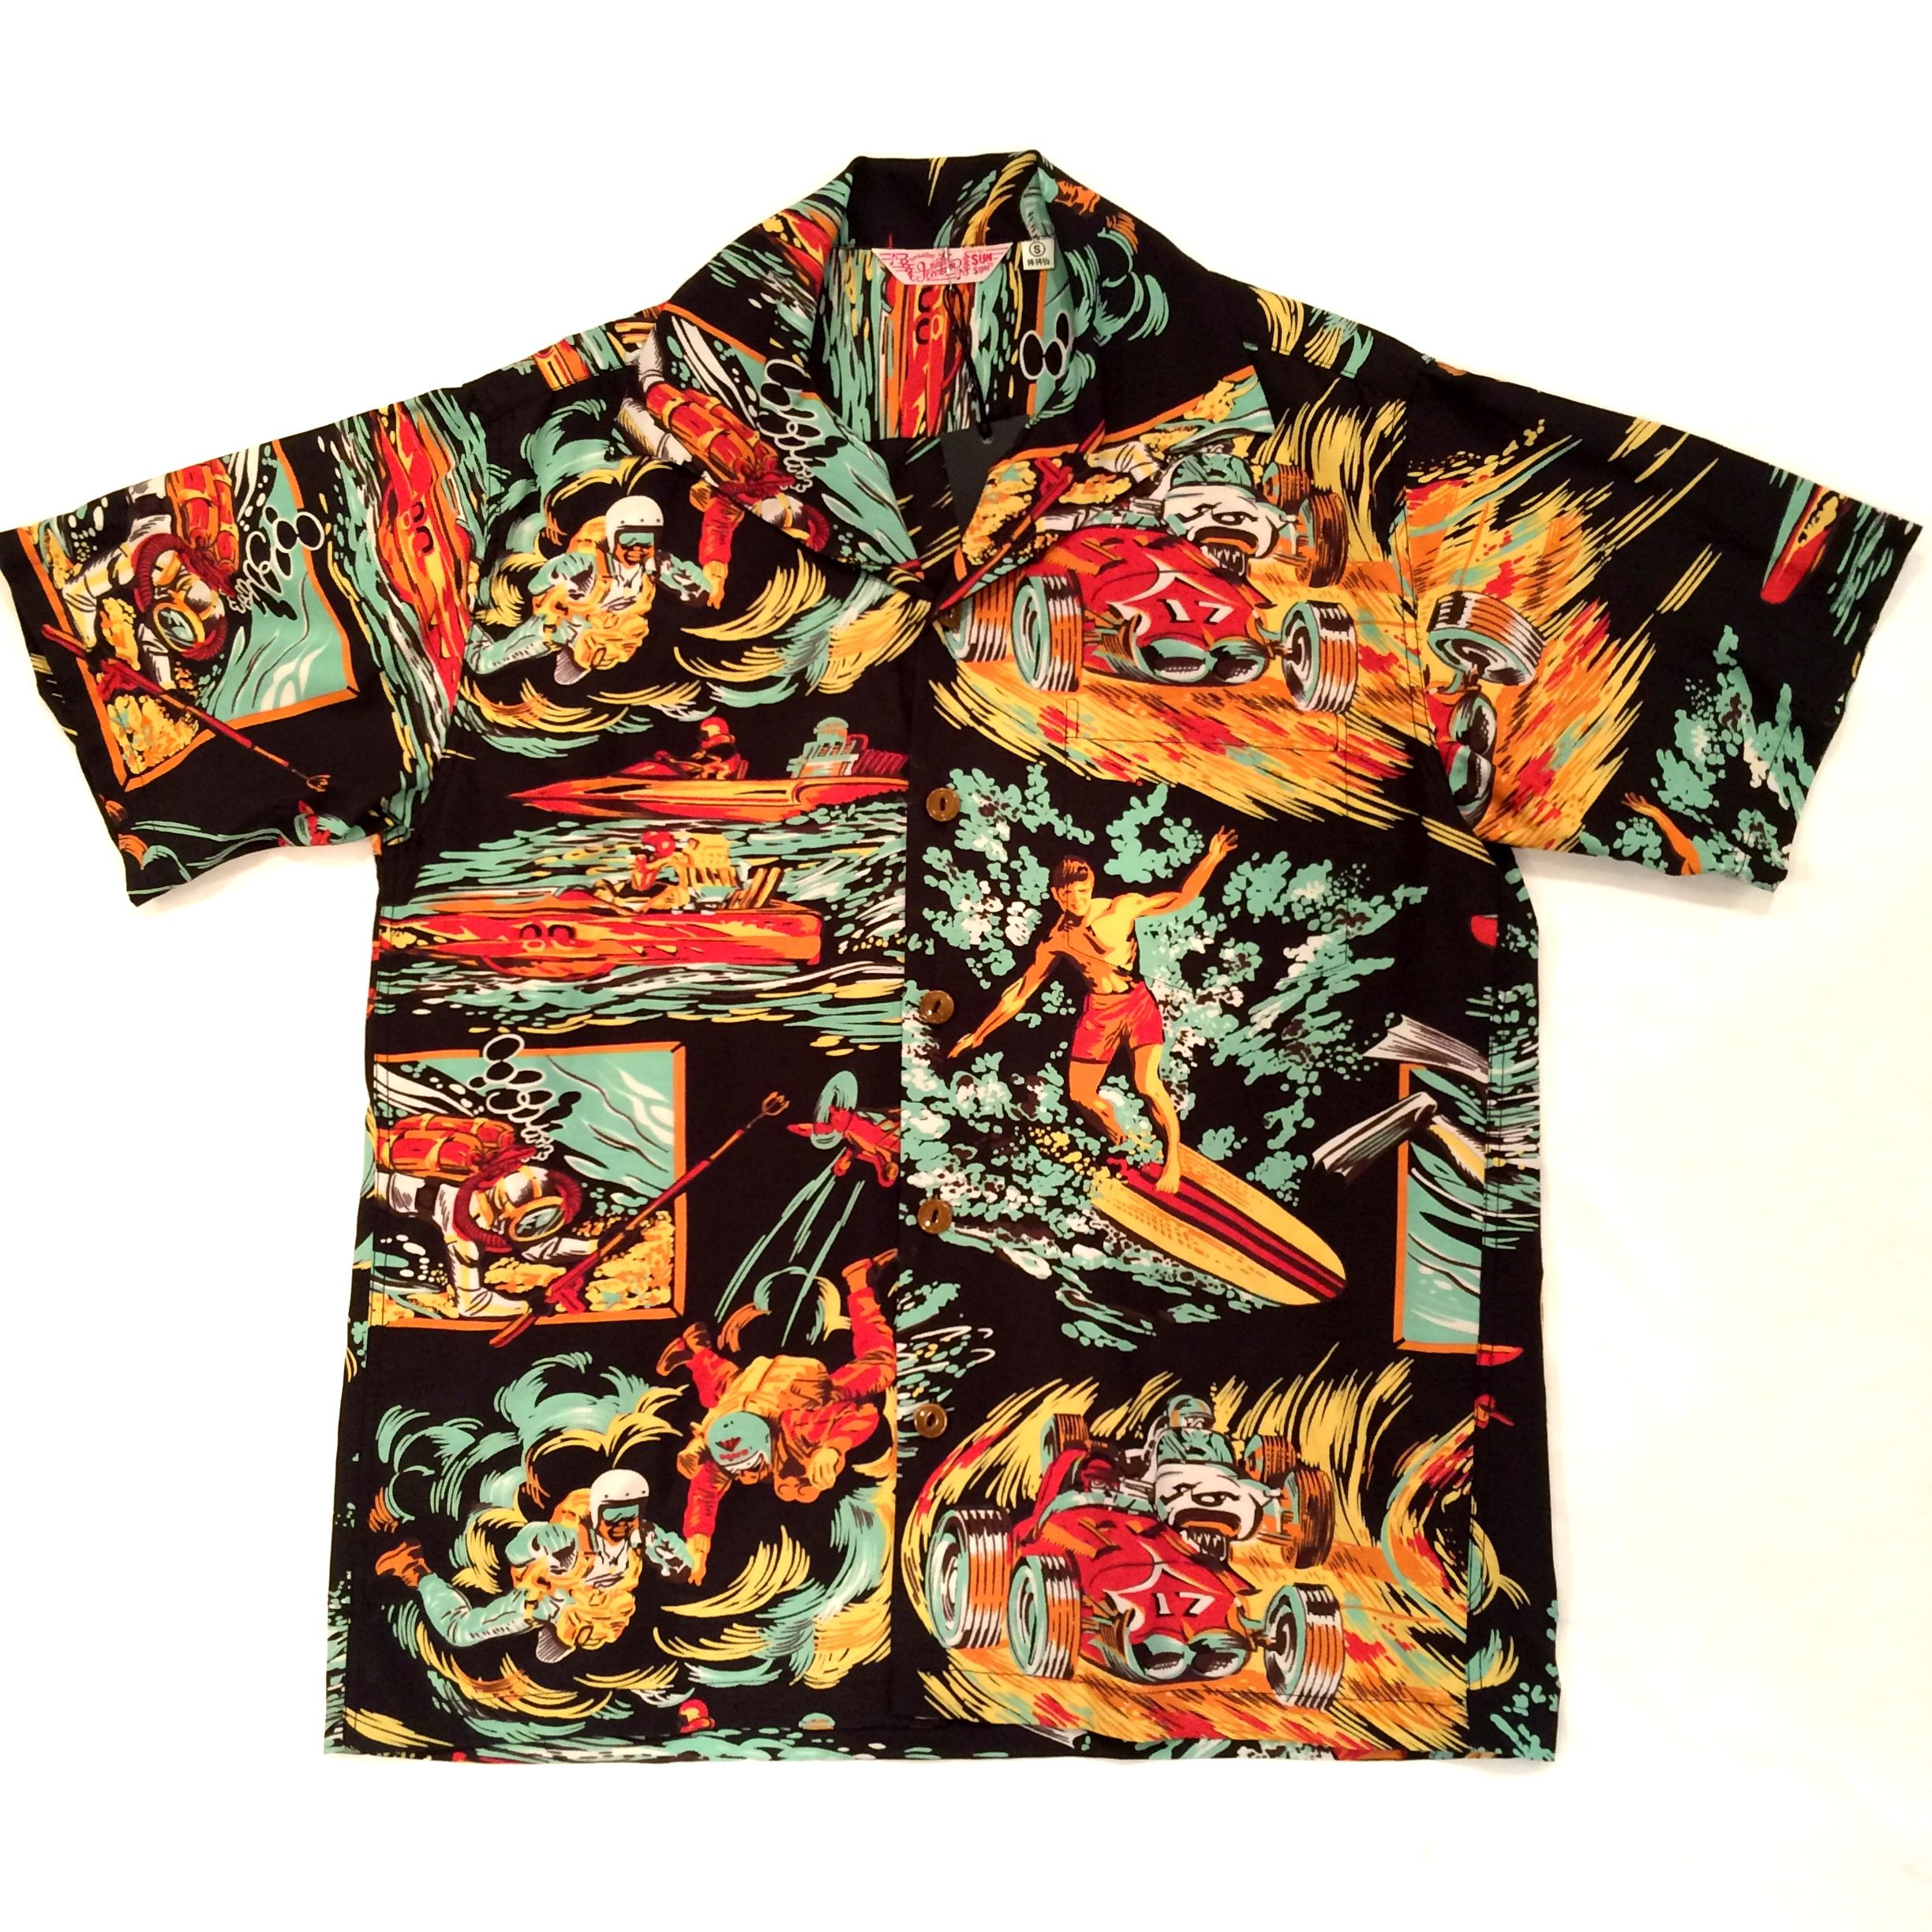 MFSC×SUN SURF COTTON/RAYON ROCK'N'ROLL SHIRT  119 BLACK SC36970